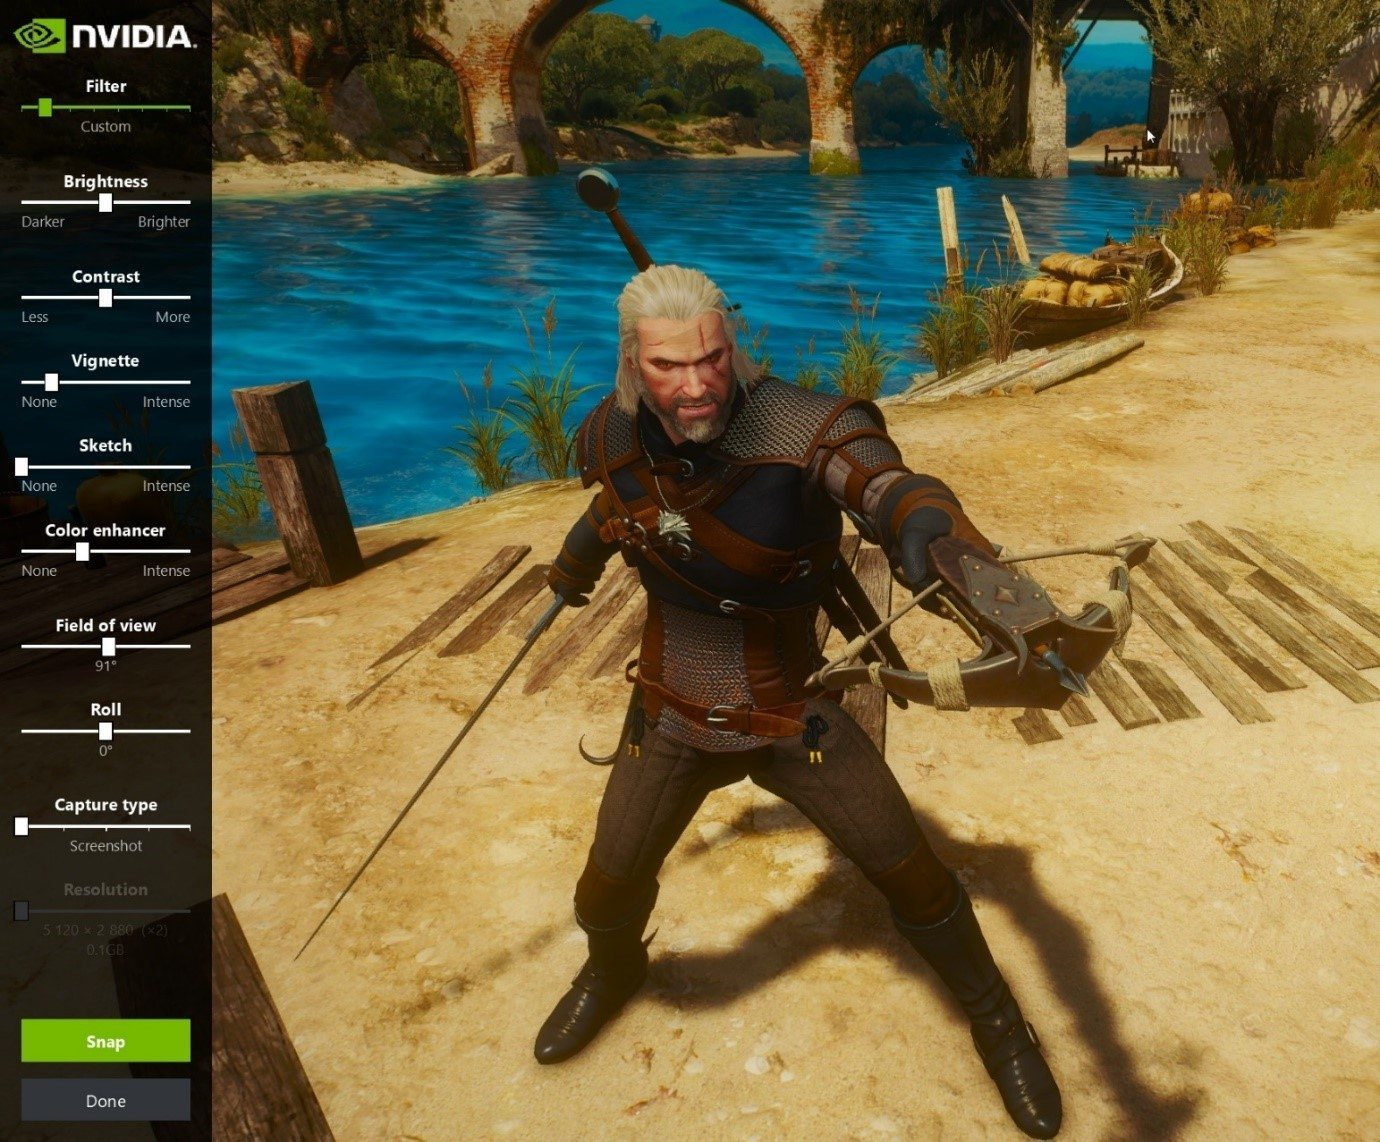 the-witcher-3-nvidia-ansel-user-interface